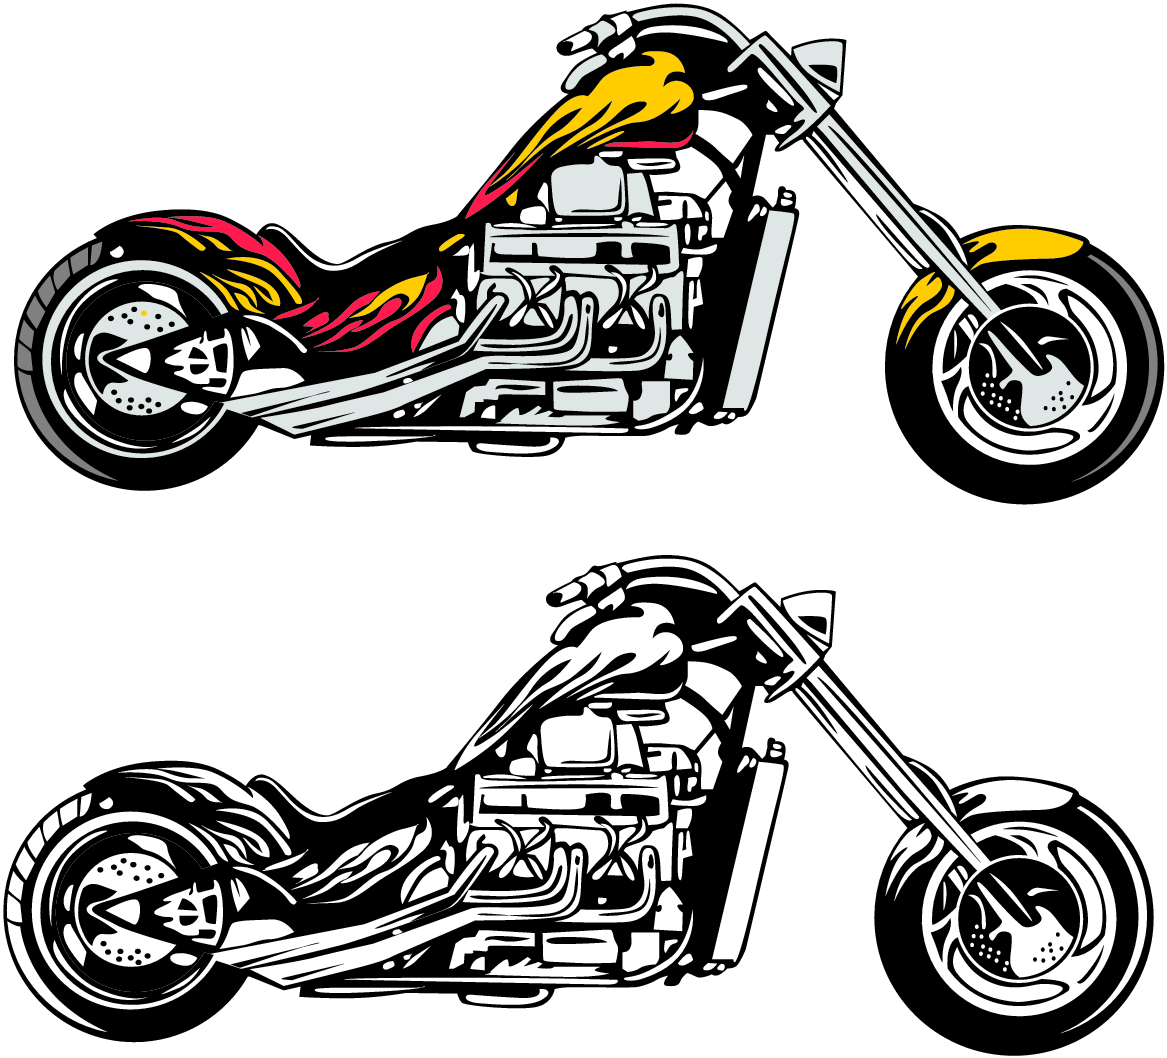 Motorcycle Chopper Clipart Background 1 HD Wallpapers | lzamgs.